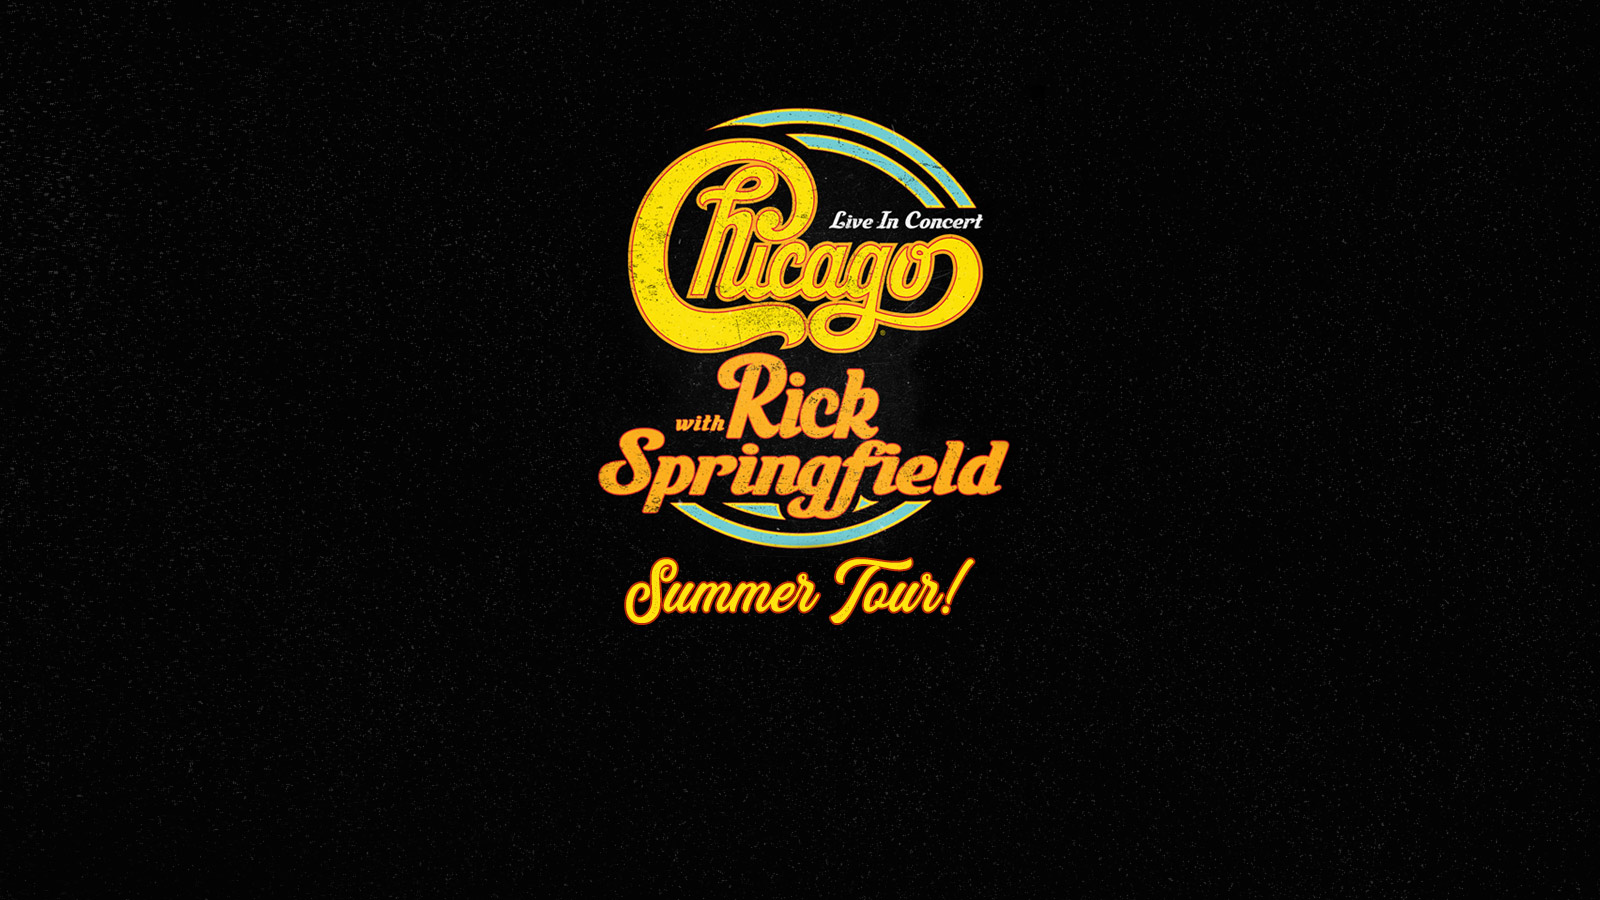 Chicago with Rick Springfield Tour